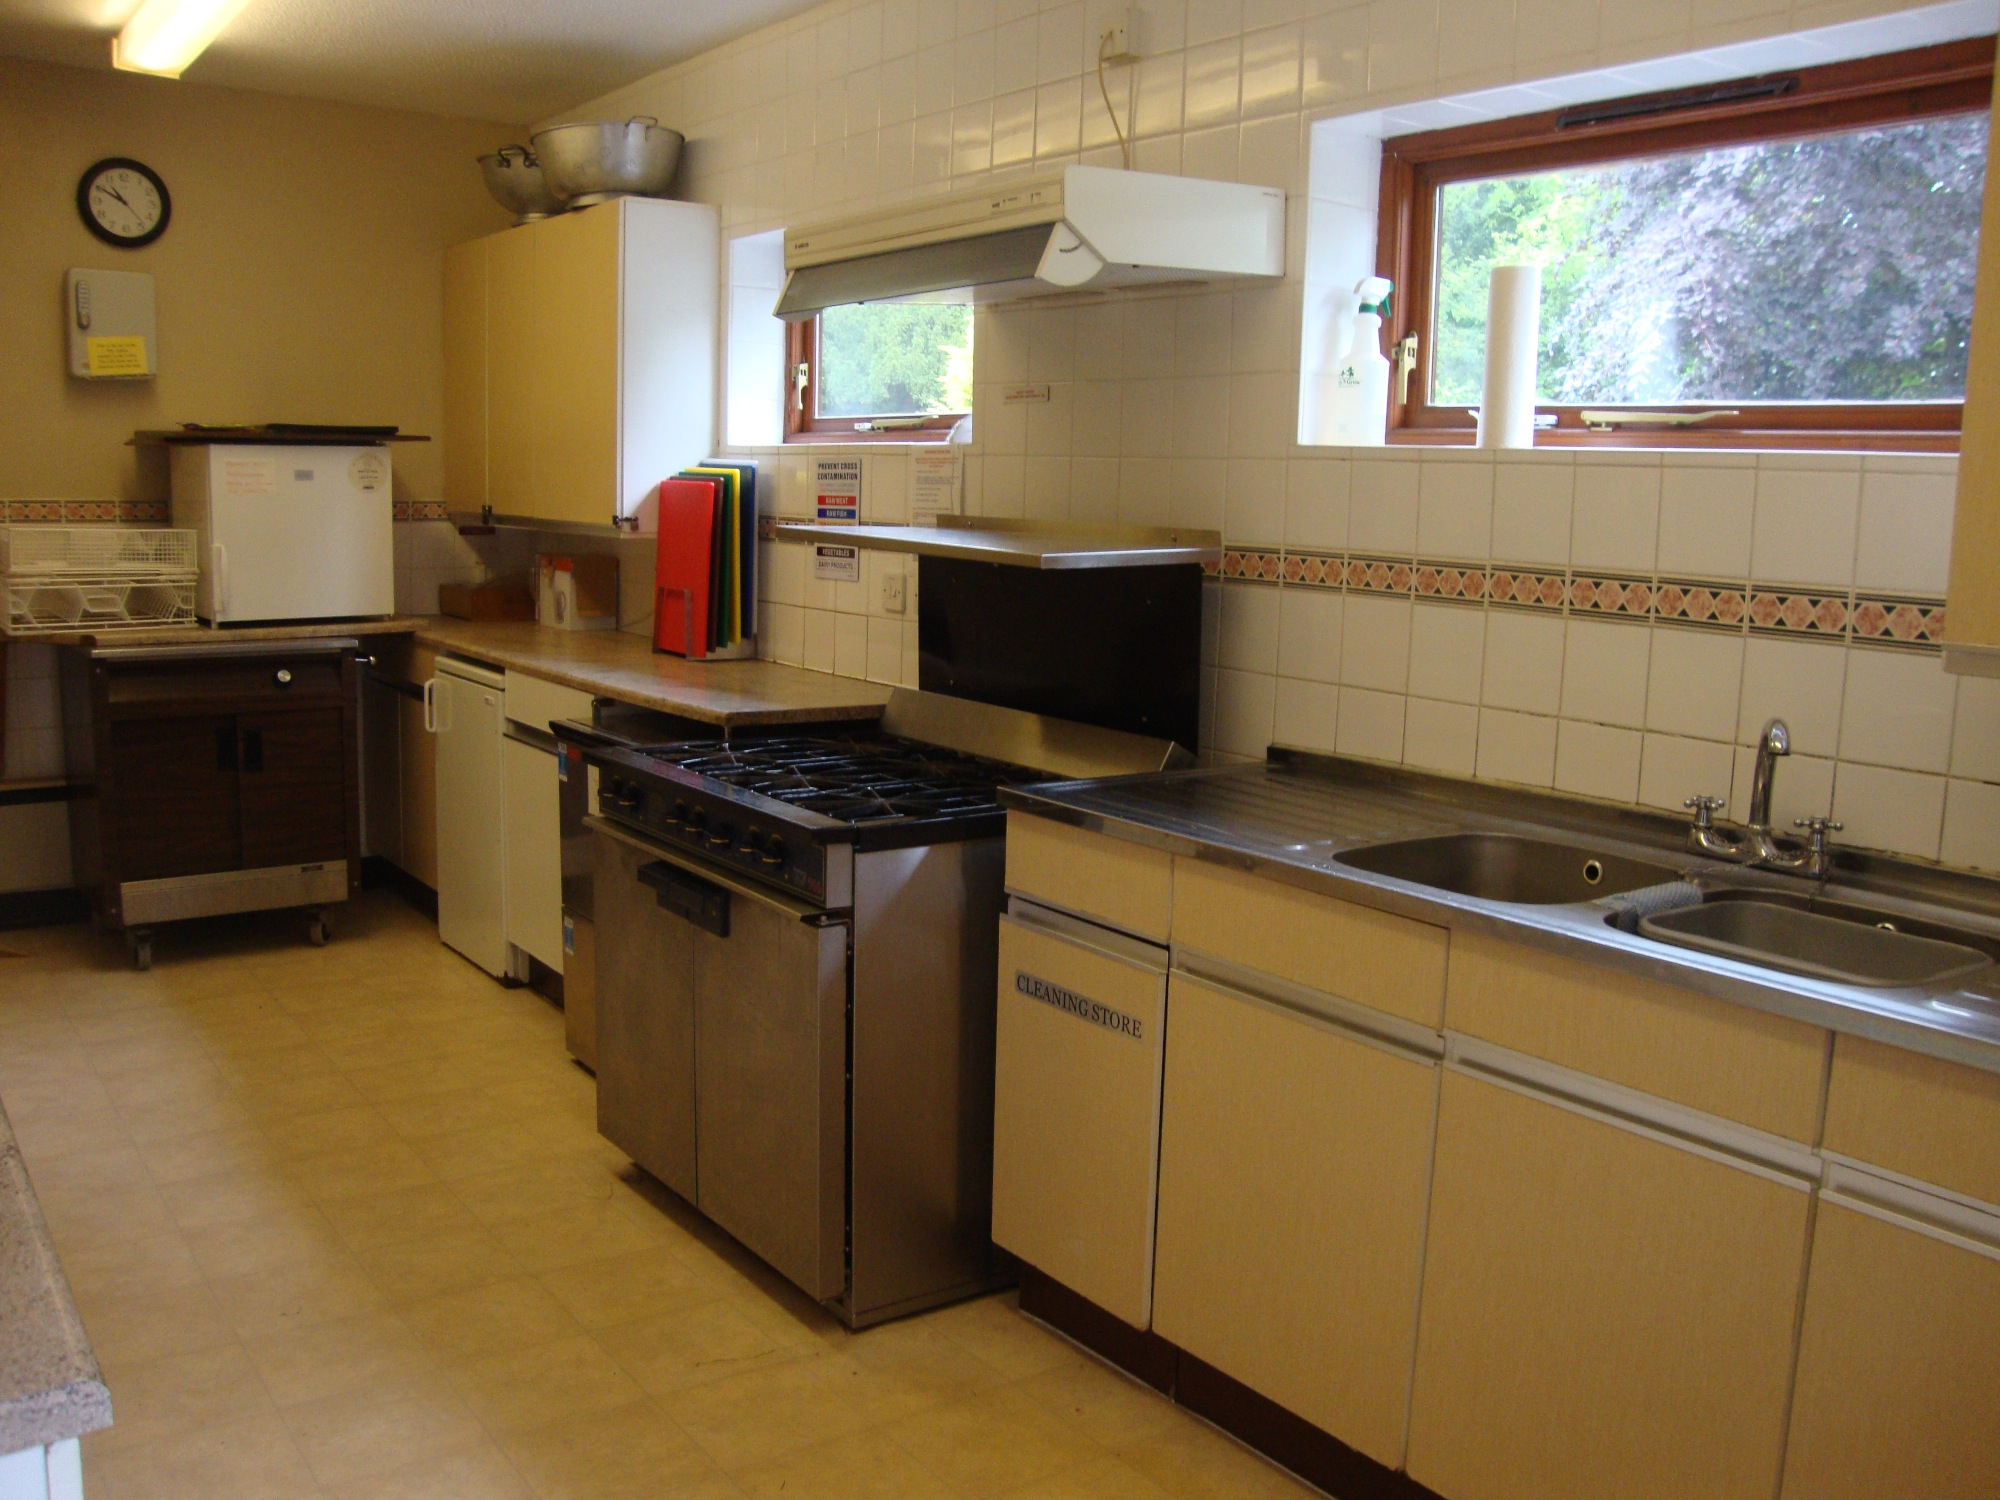 Village Hall Kitchen Facilities